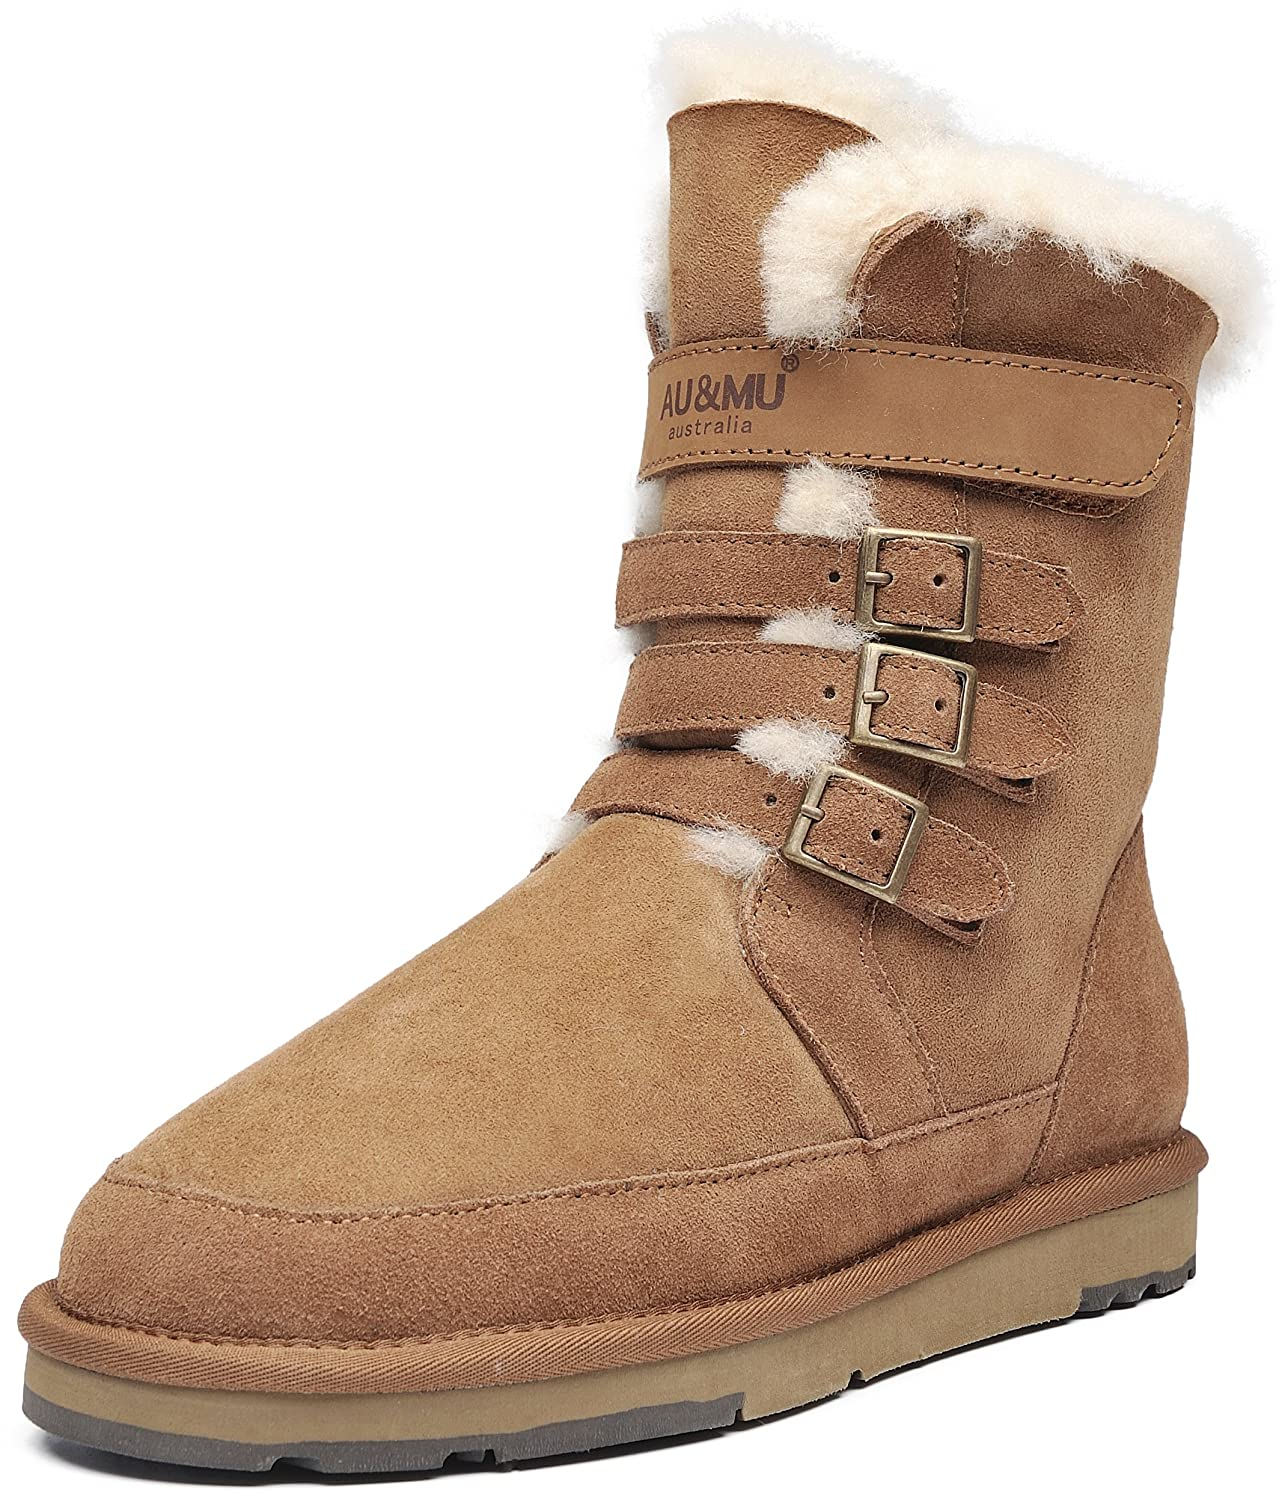 AU&MU Womens Mid Calf Snow Boots Short Winter Boots B073FGG6LL 9 B(M) US|Chestnut